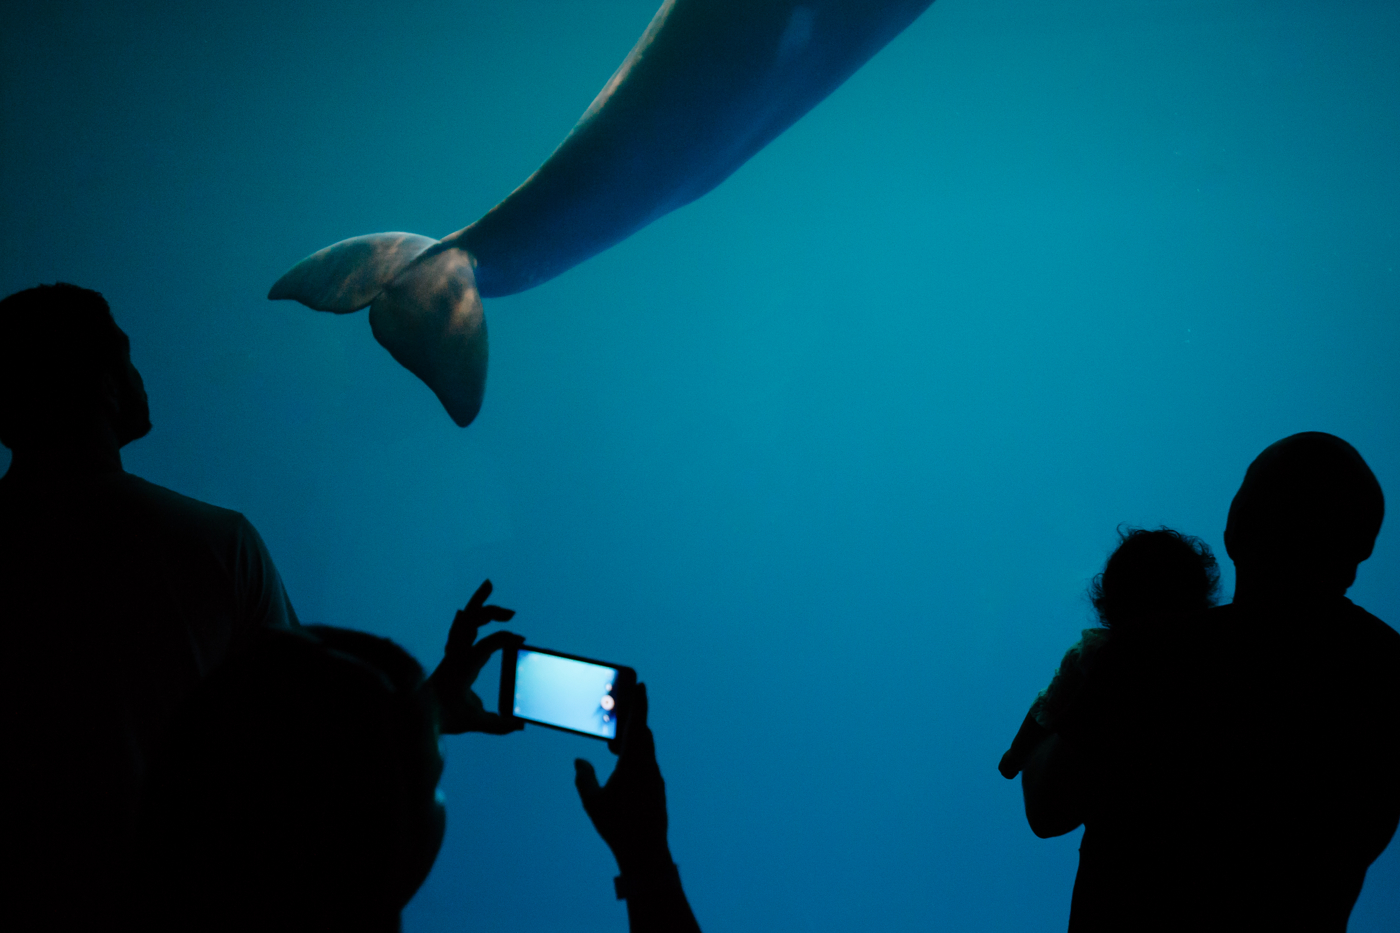 People watch a passing beluga whale after a show at the Shedd Aquarium in Chicago, IL on Febuary, 19, 2017.